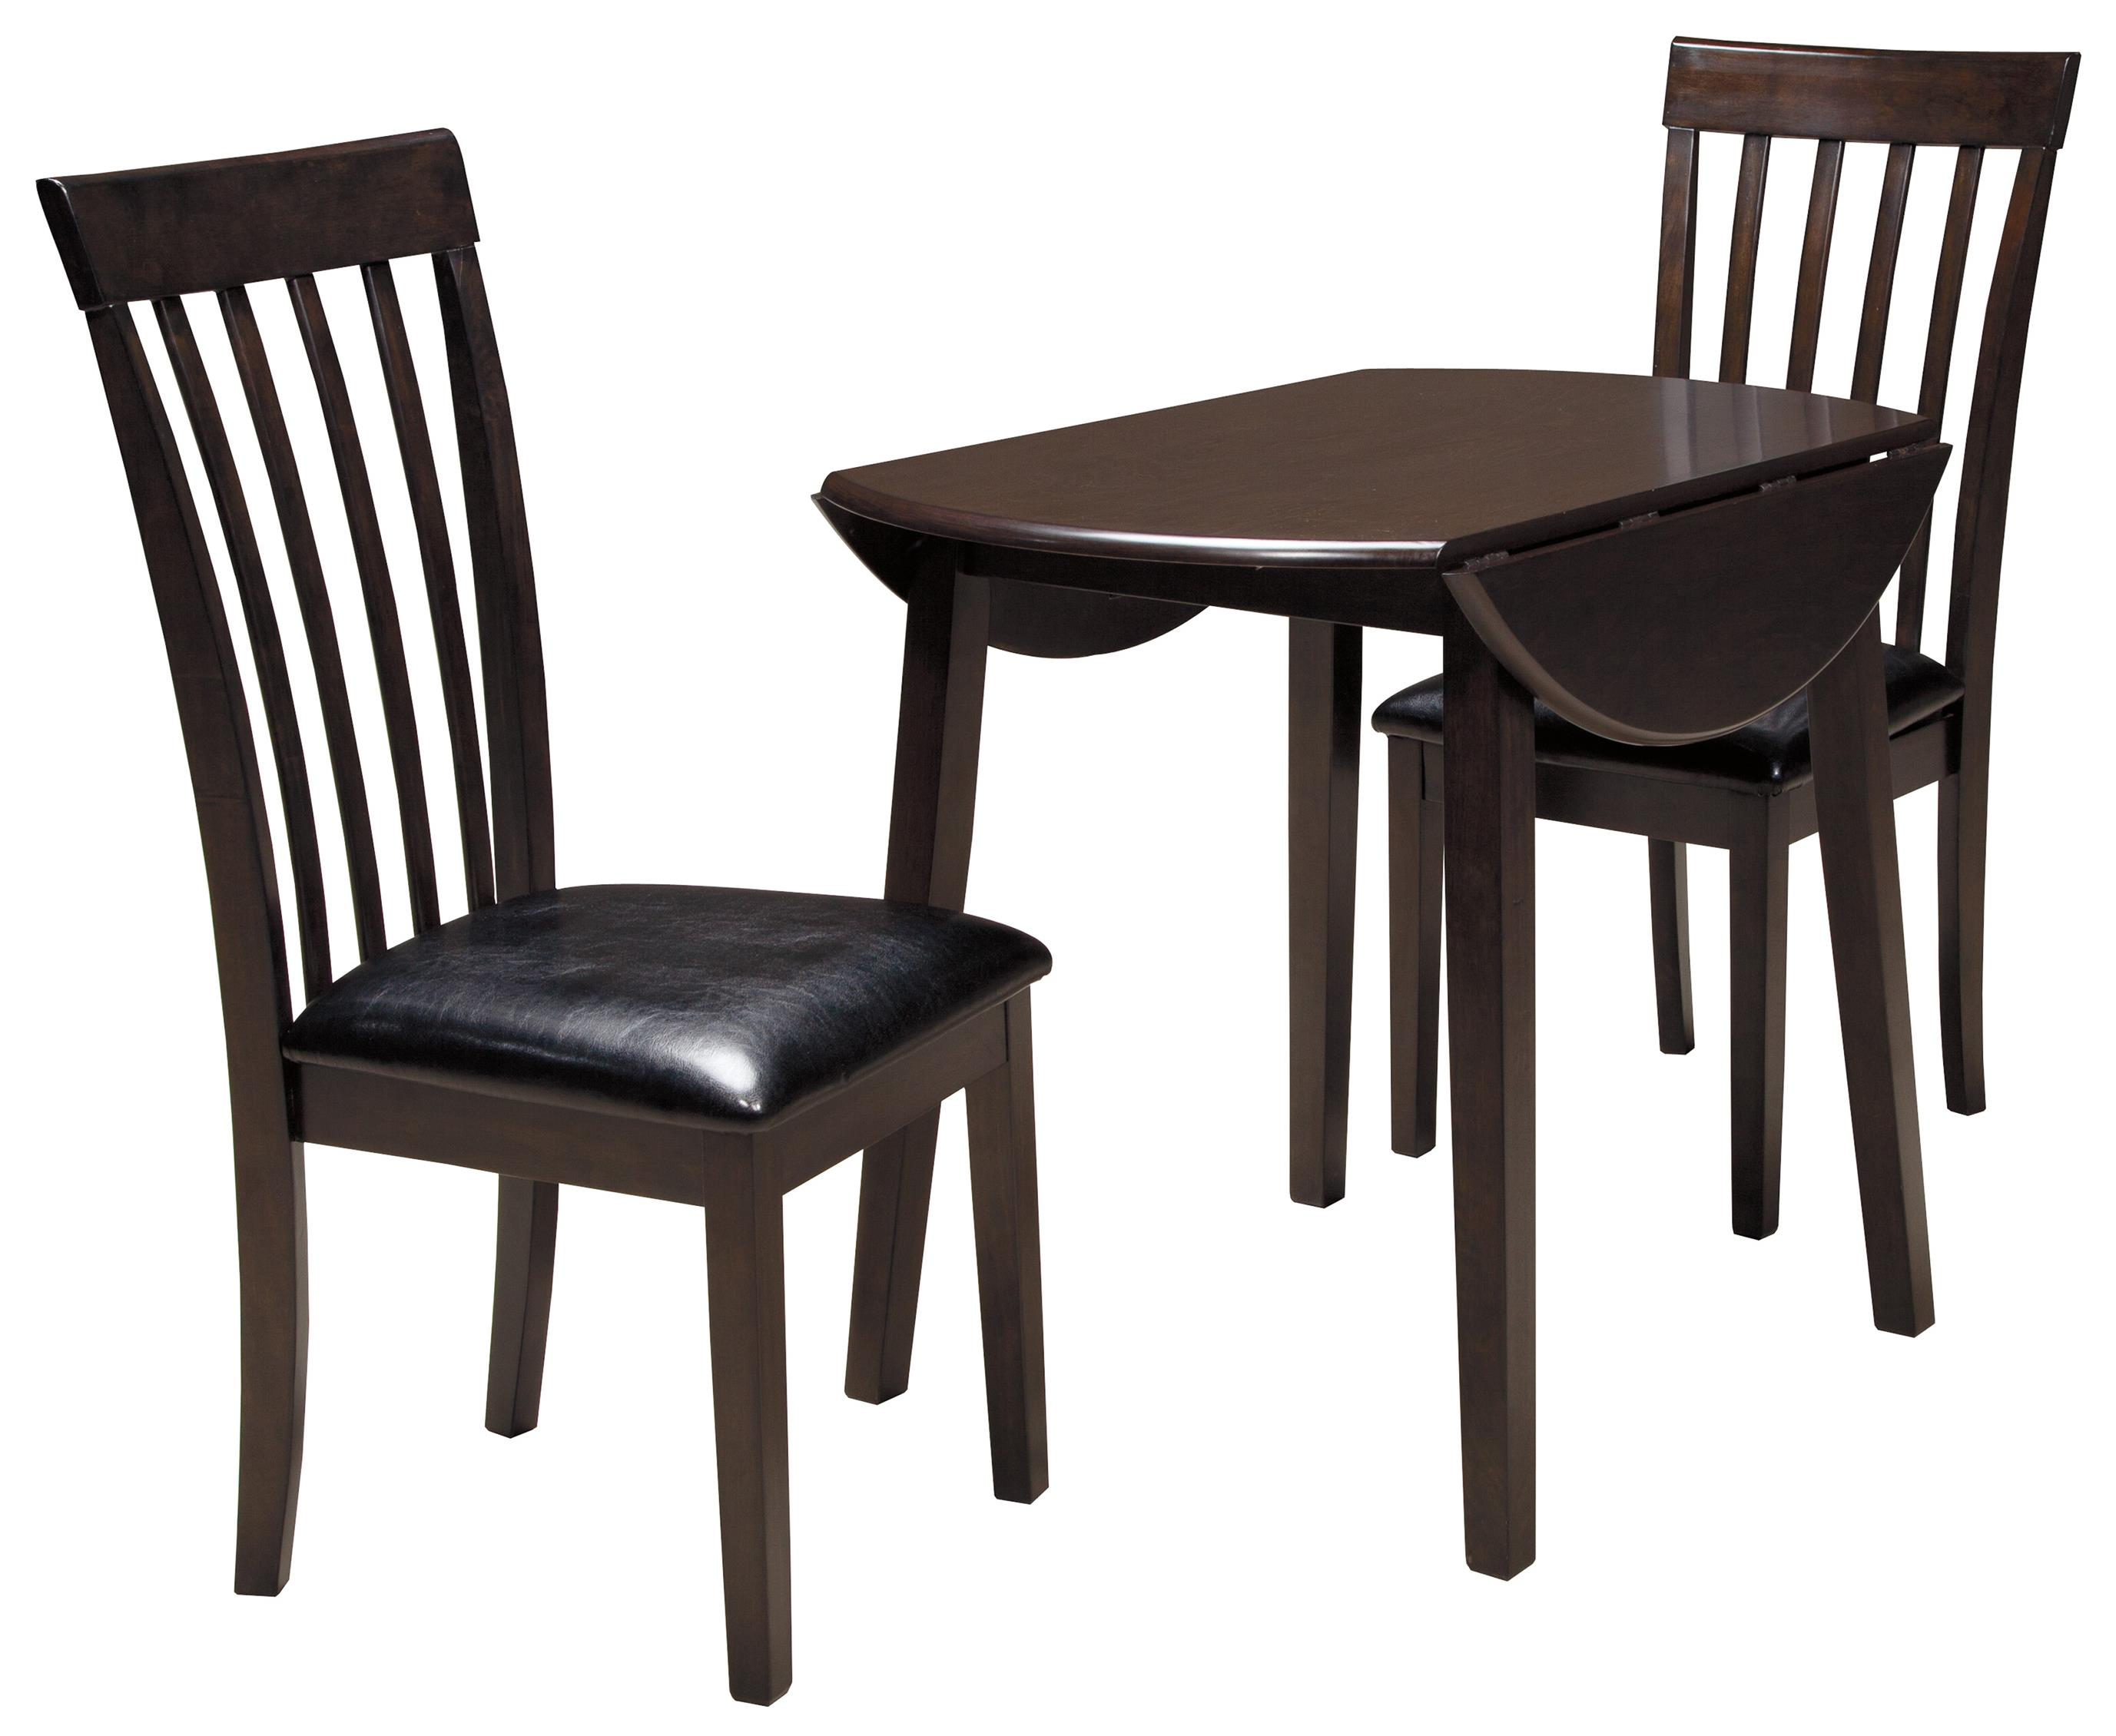 3 piece round drop leaf table set by signature design by ashley wolf and gardiner wolf furniture. Black Bedroom Furniture Sets. Home Design Ideas